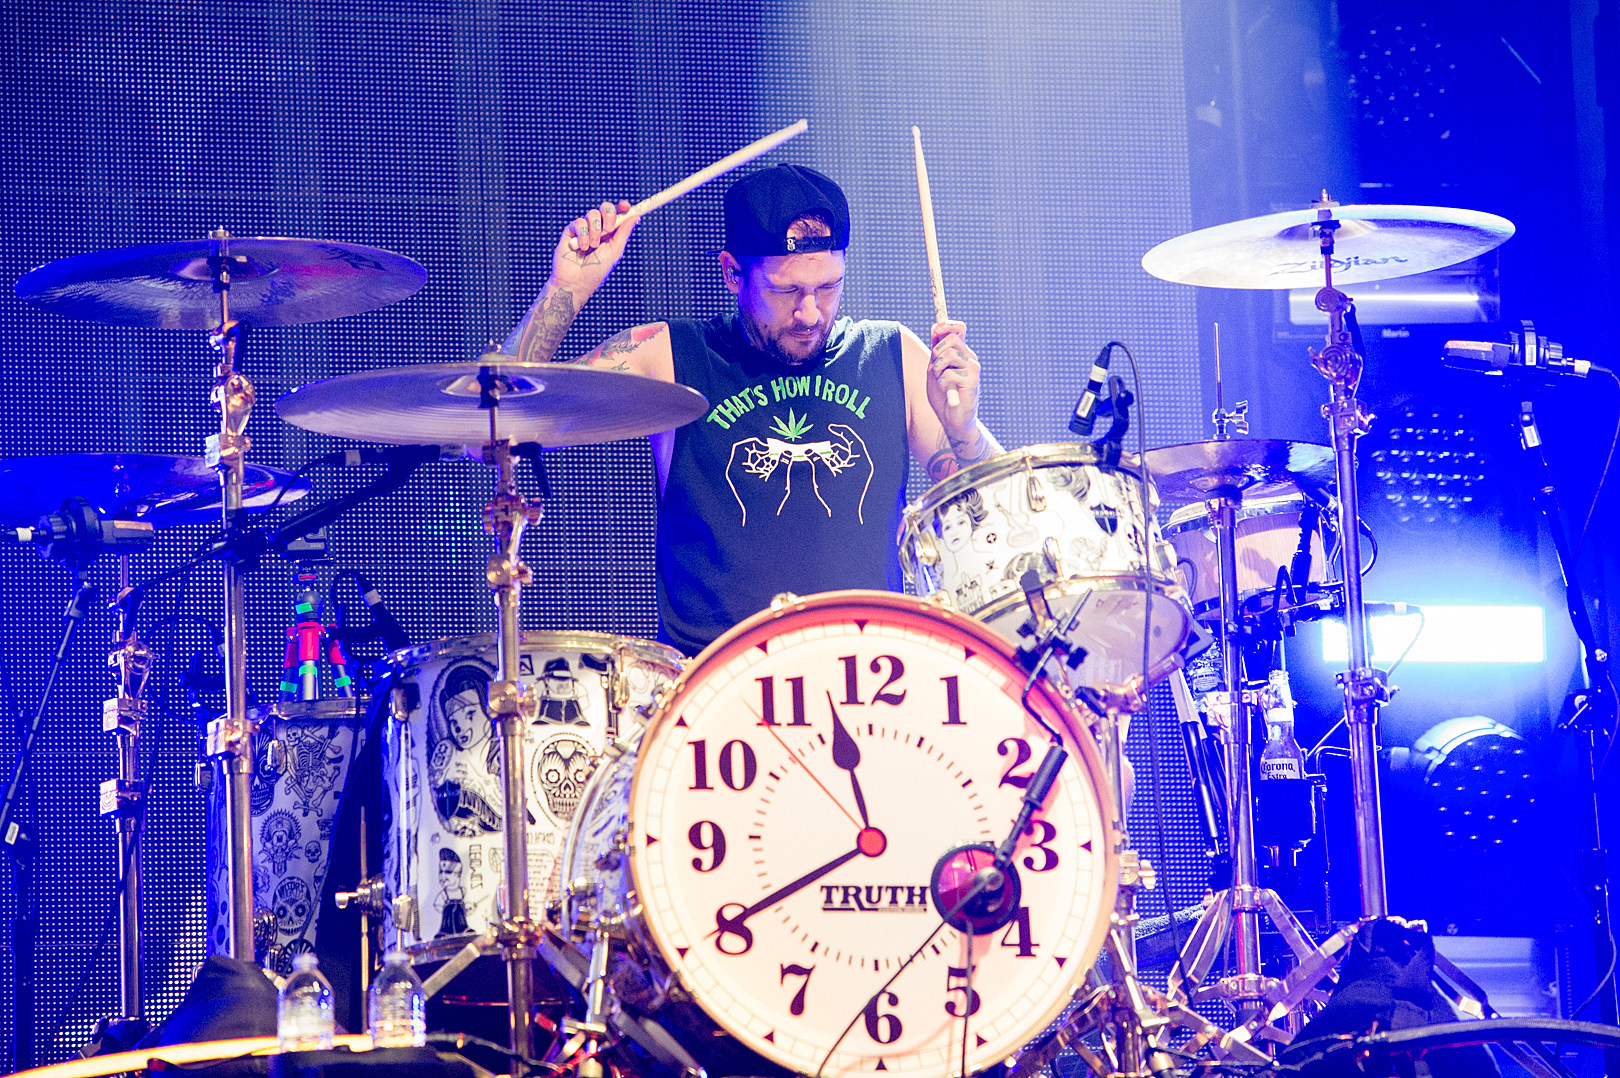 Pierce the Veil's Mike Fuentes Accused of Sexual Relations With a Minor